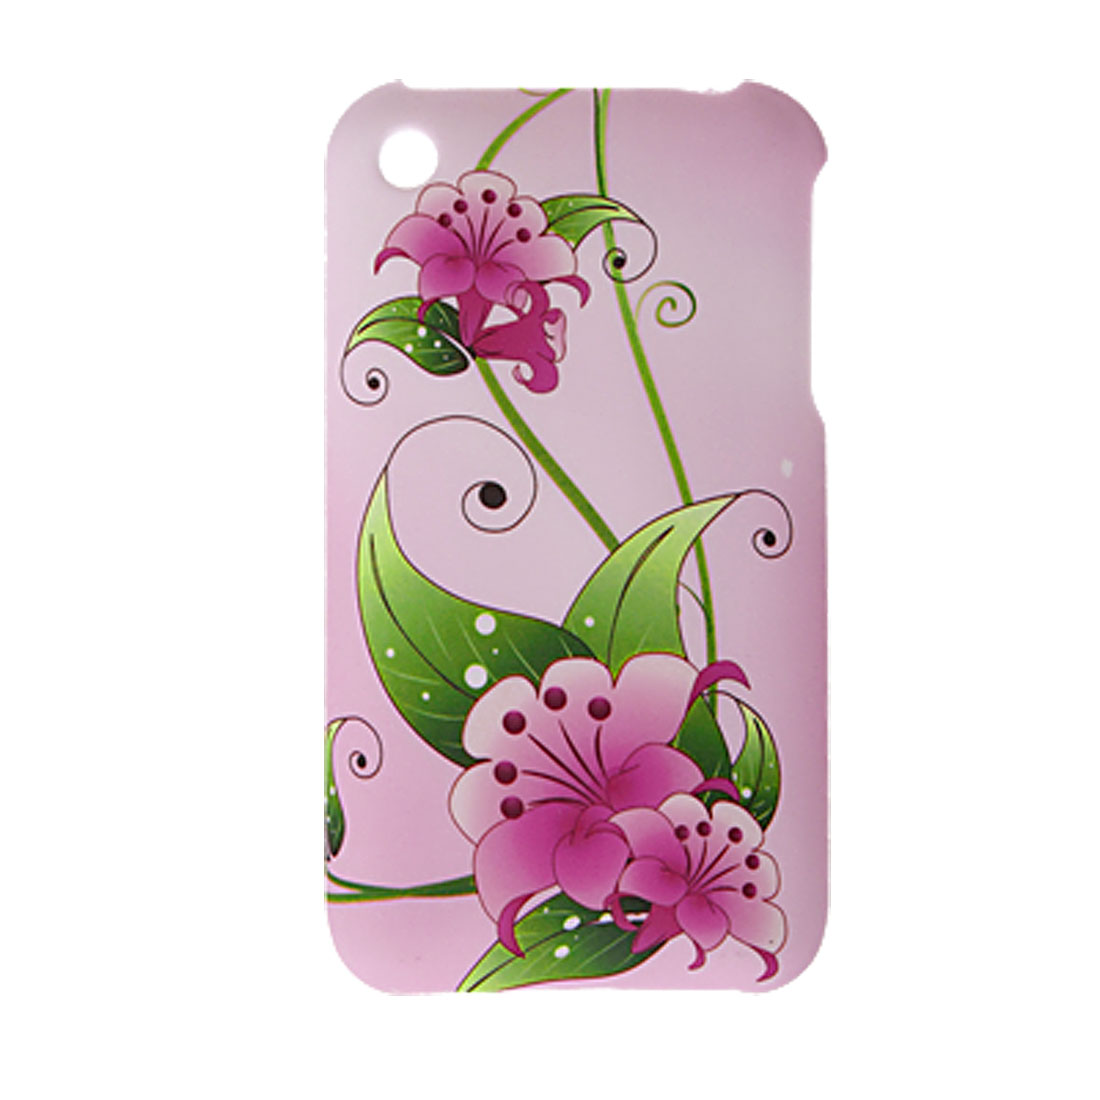 Light Pink Flower Pattern Rubberized Hard Plastic Case for Apple iPhone 3G